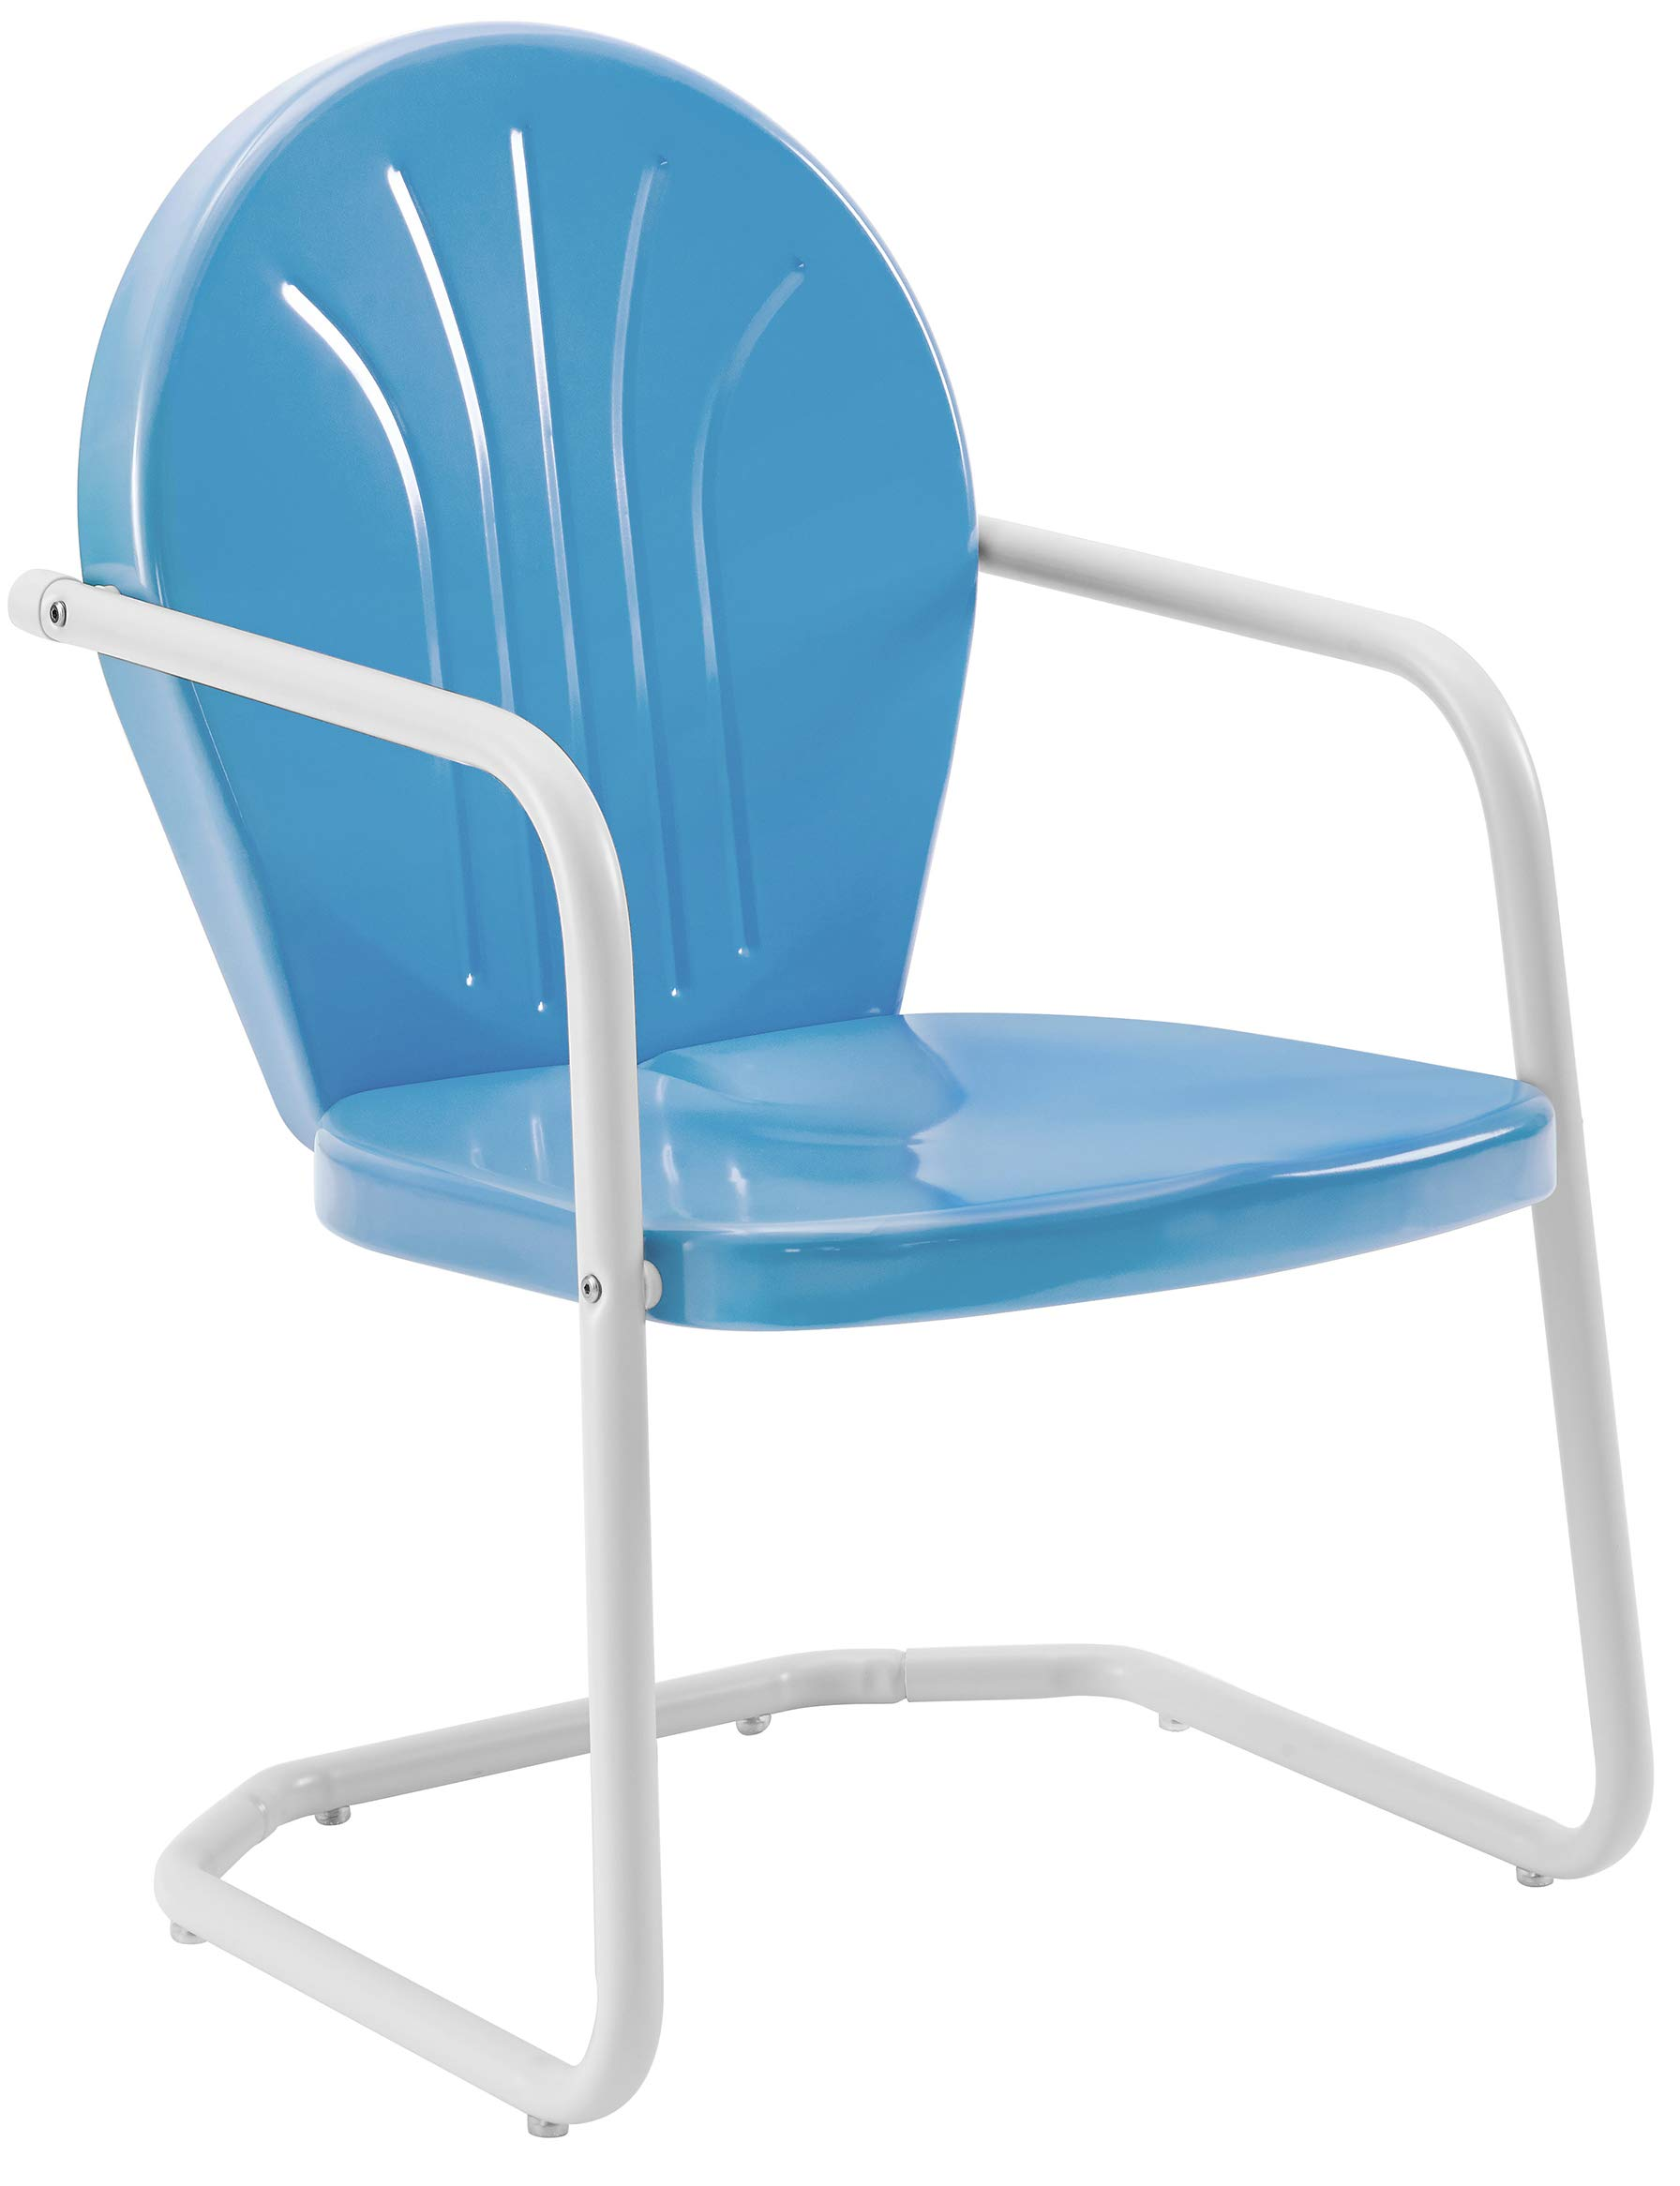 Crosley Furniture Griffith Metal Outdoor Chair - Sky Blue by Crosley Furniture